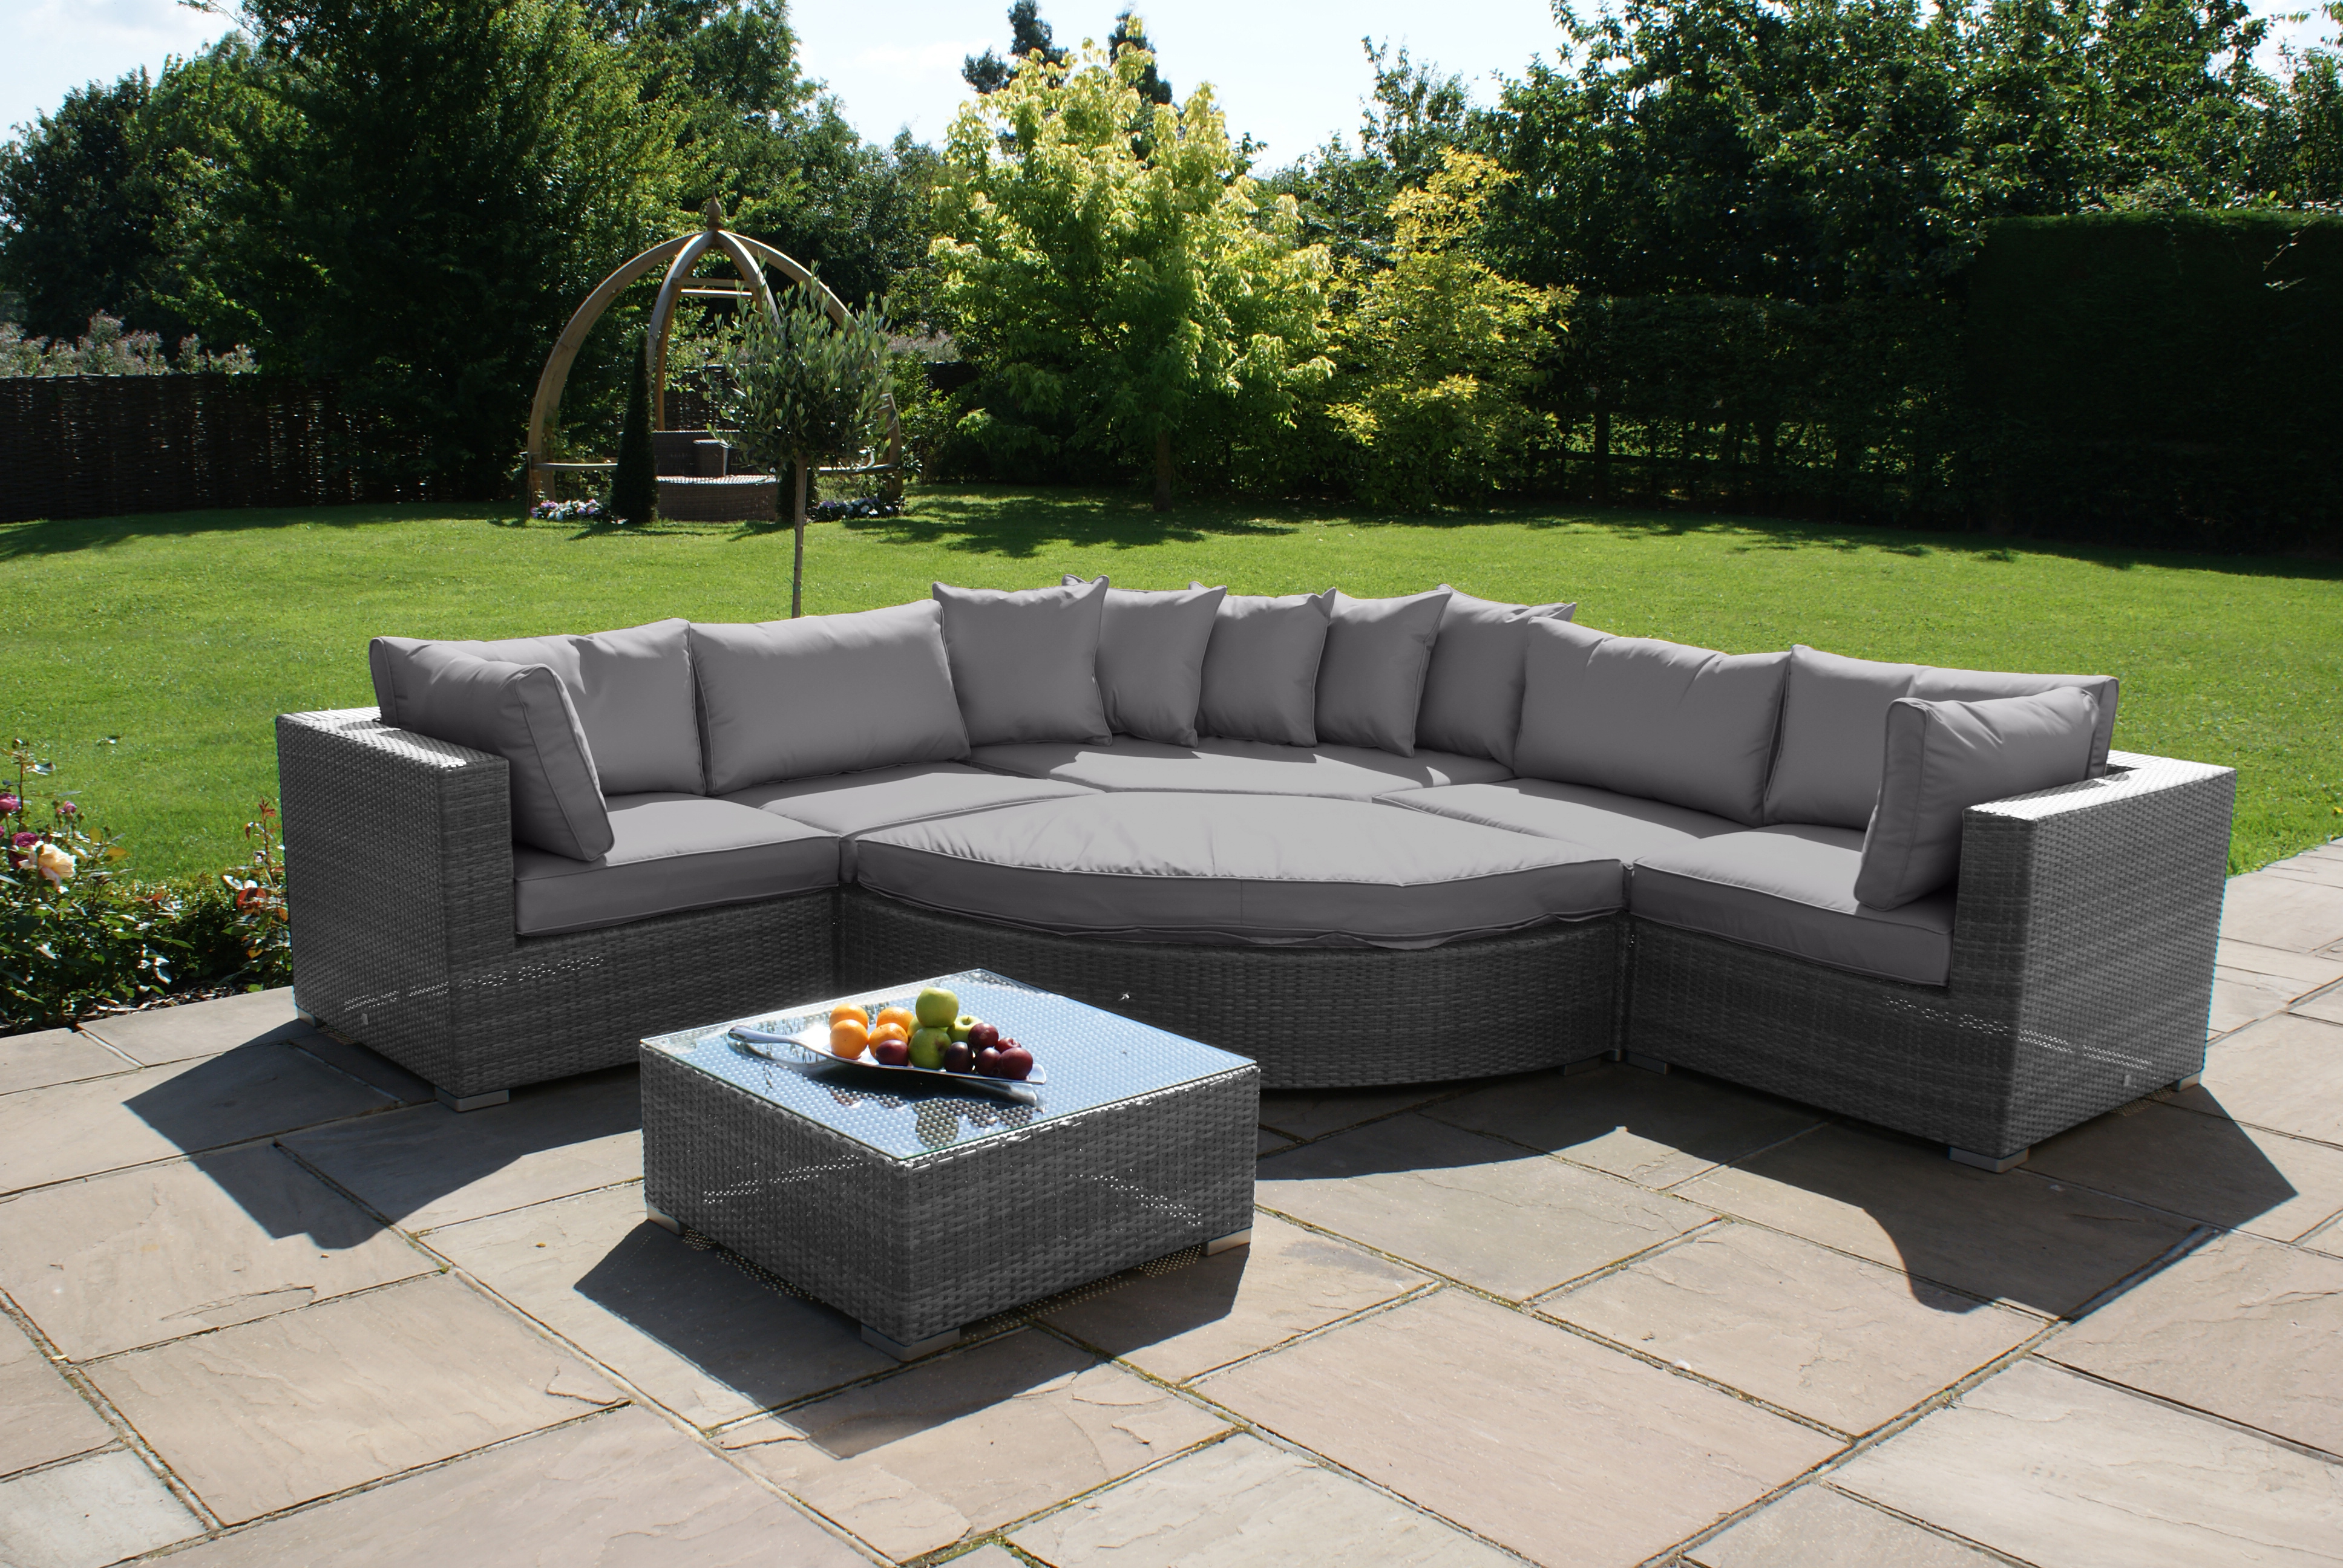 Rattan Corner Sofa Set Uk Rattan Corner Sofa 5 Seater Rattan Corner Sofa Set With